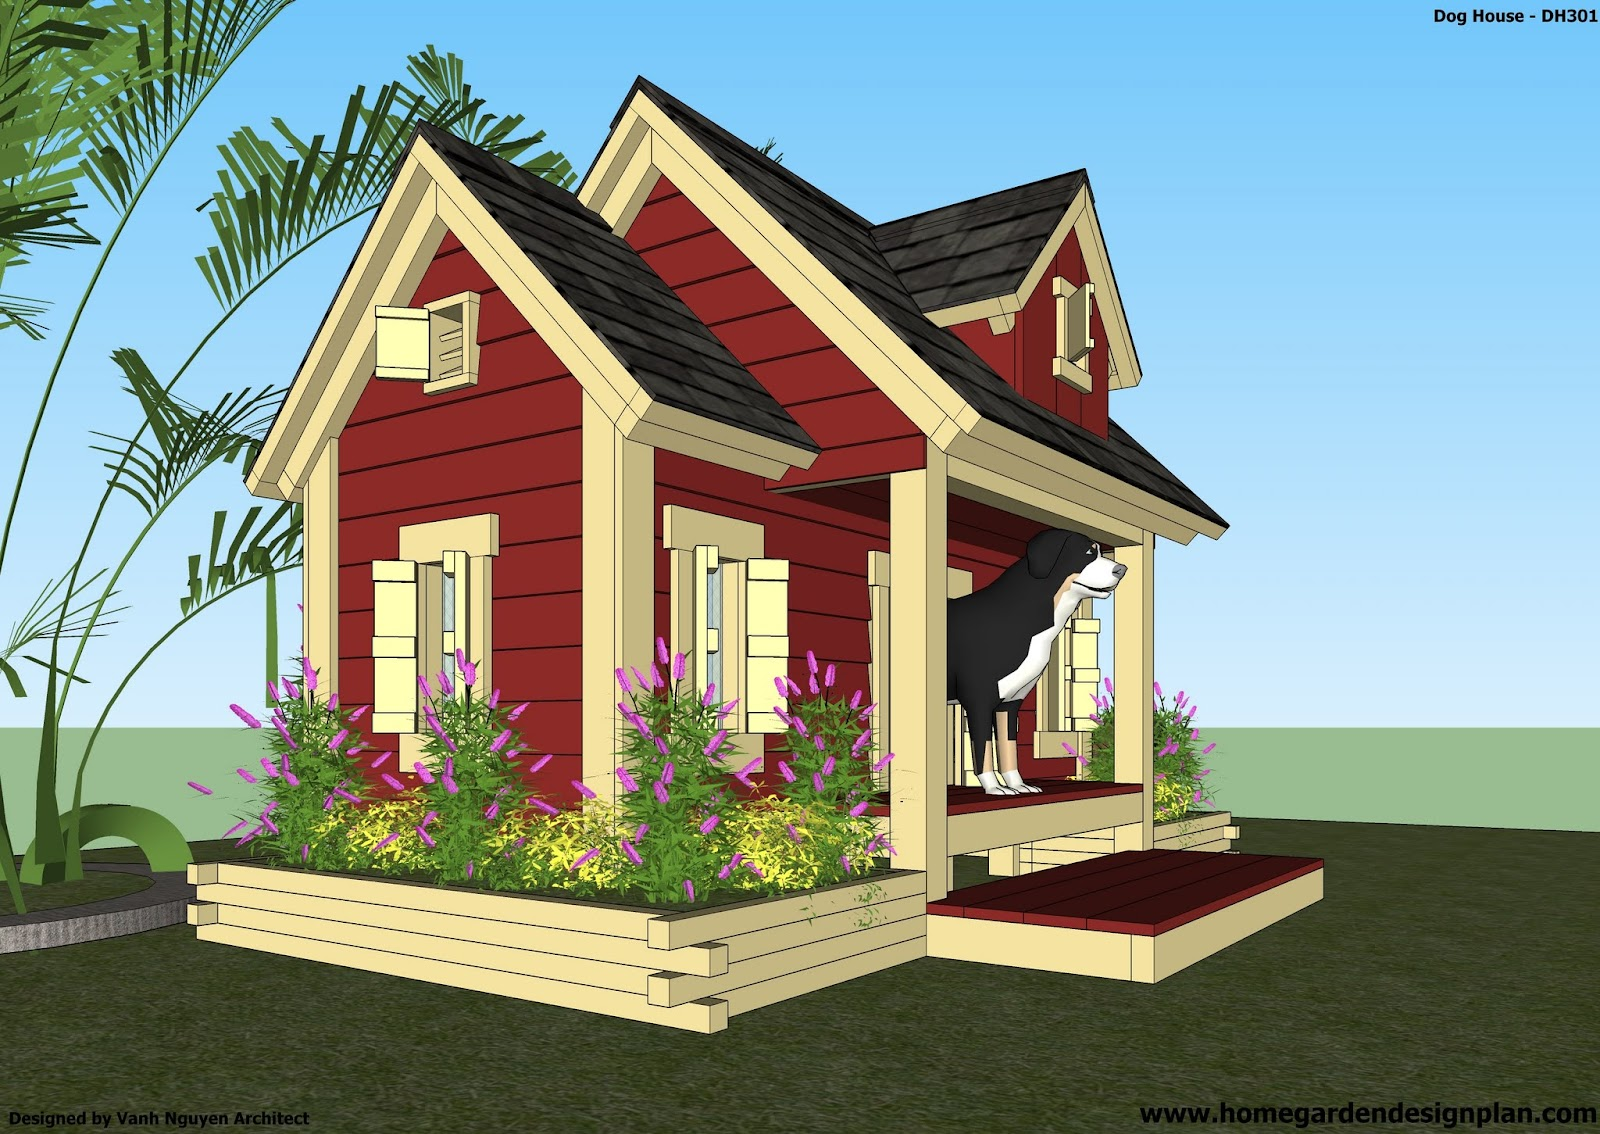 Free Dog House Plans Dog Breeds Picture